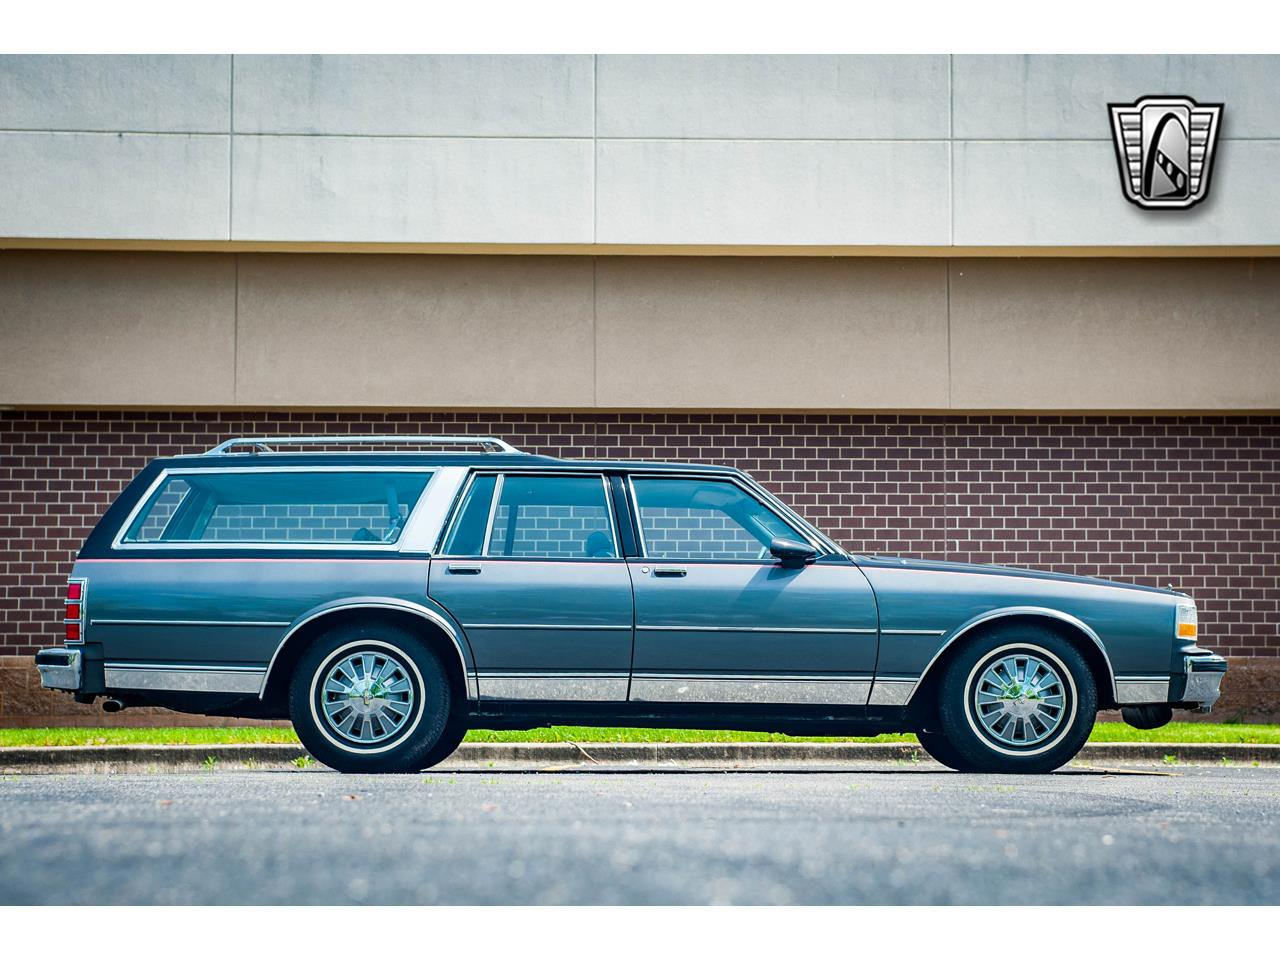 Large Picture of '89 Chevrolet Caprice located in Illinois - $17,995.00 - QB9K